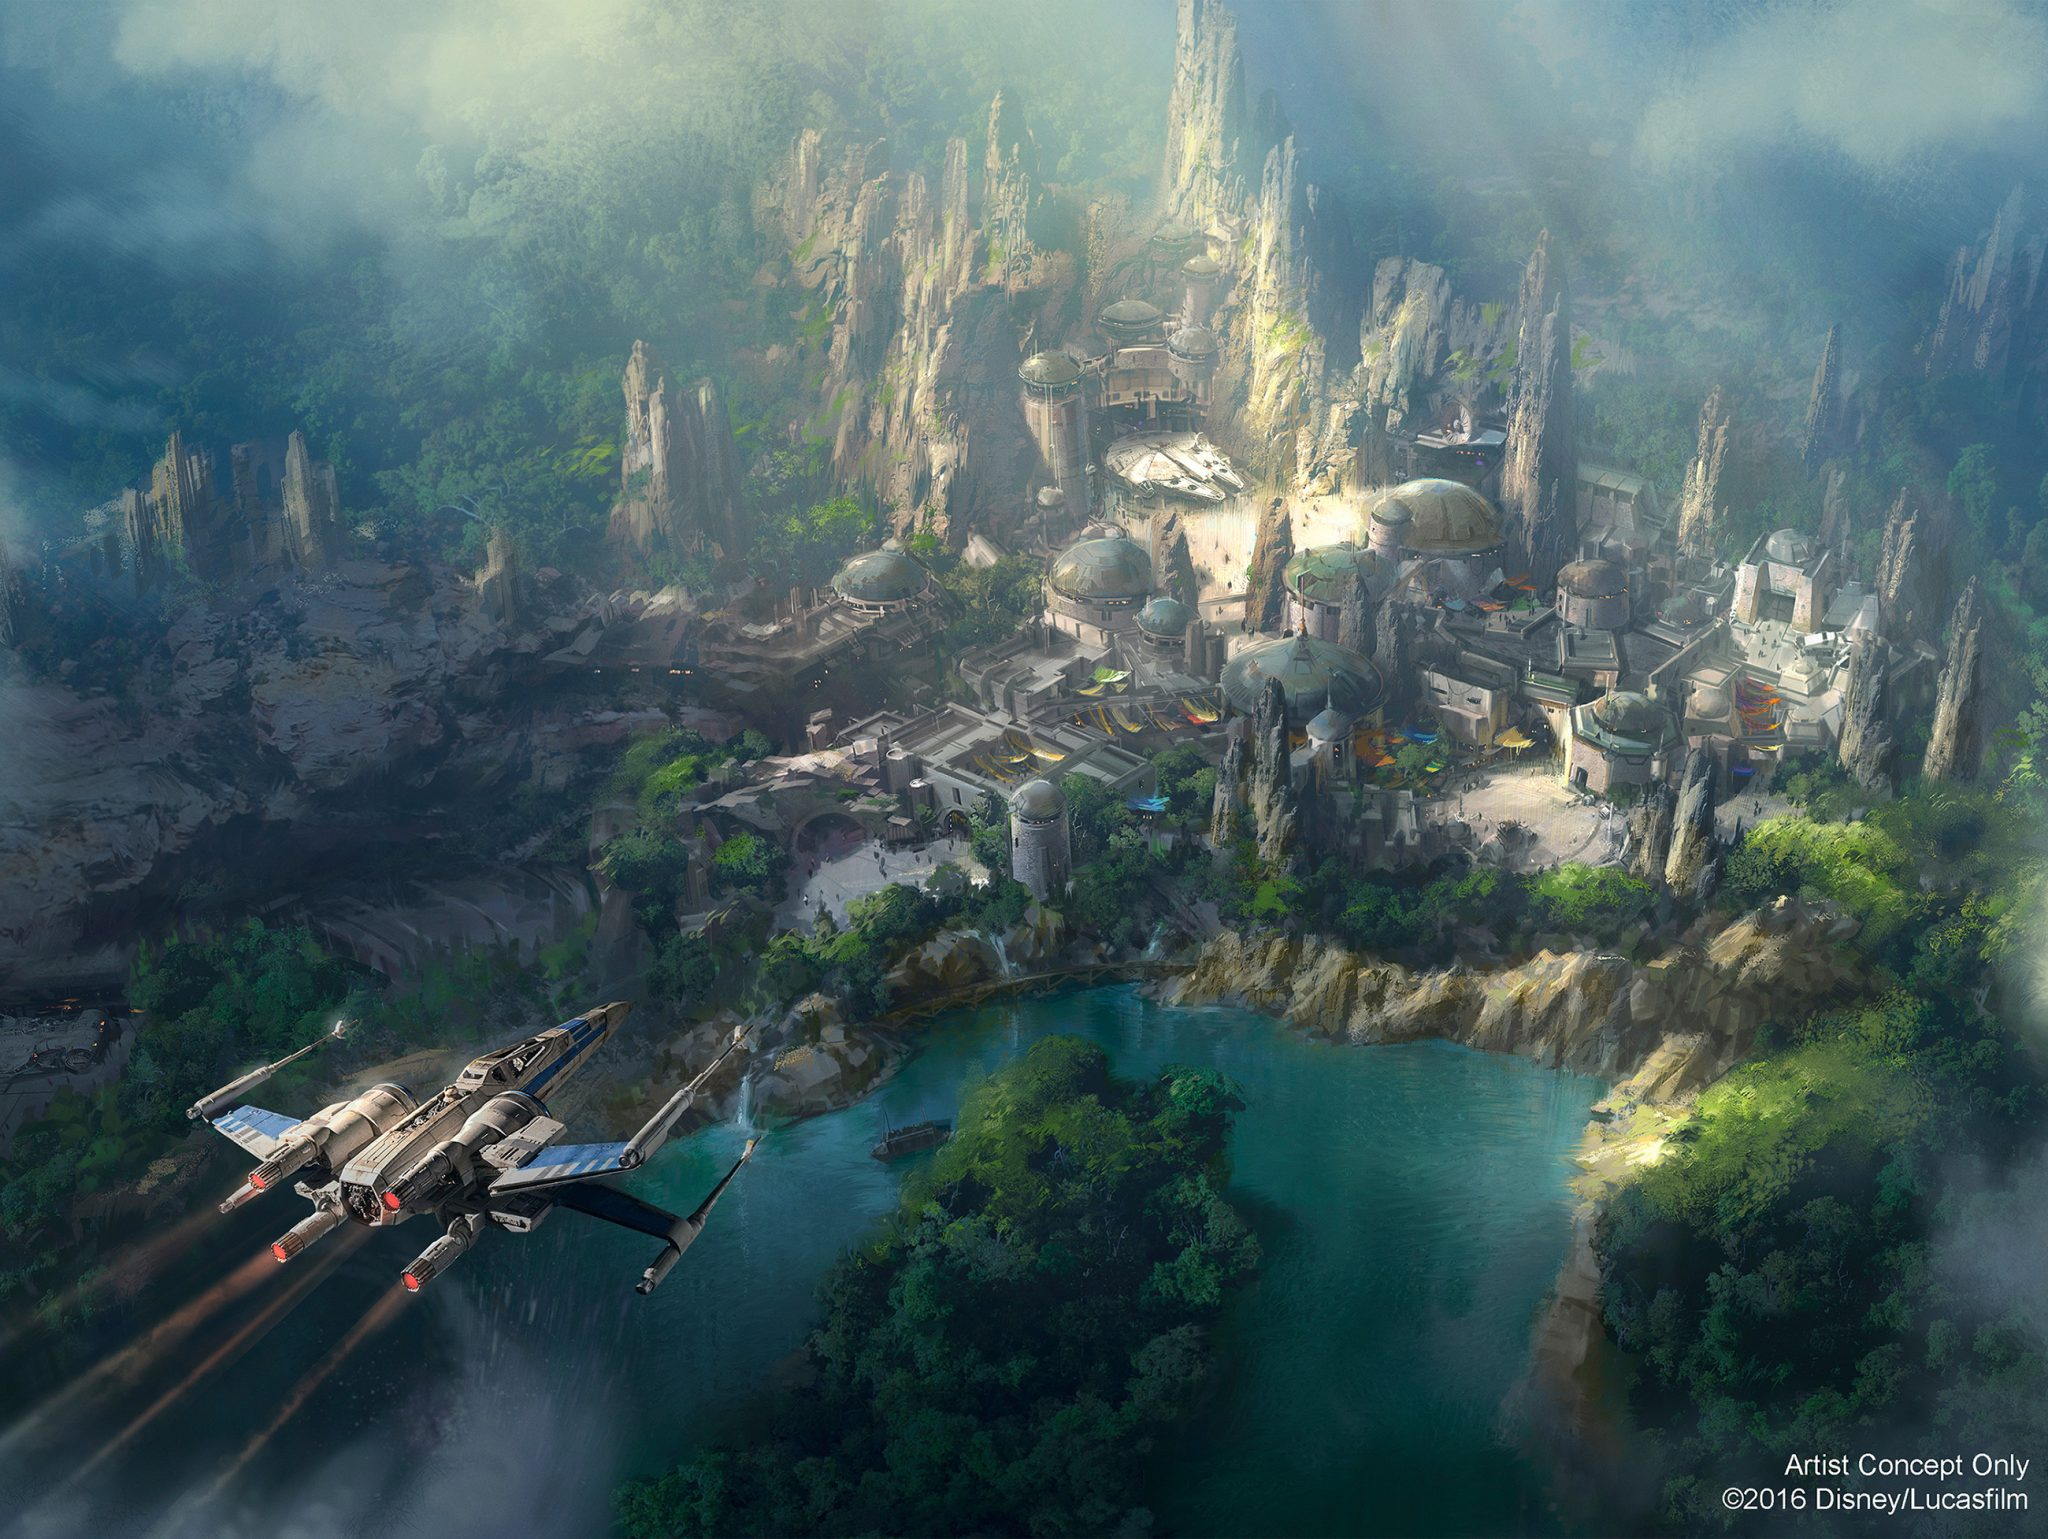 Star Wars Themed Land Disneyland Concept Art